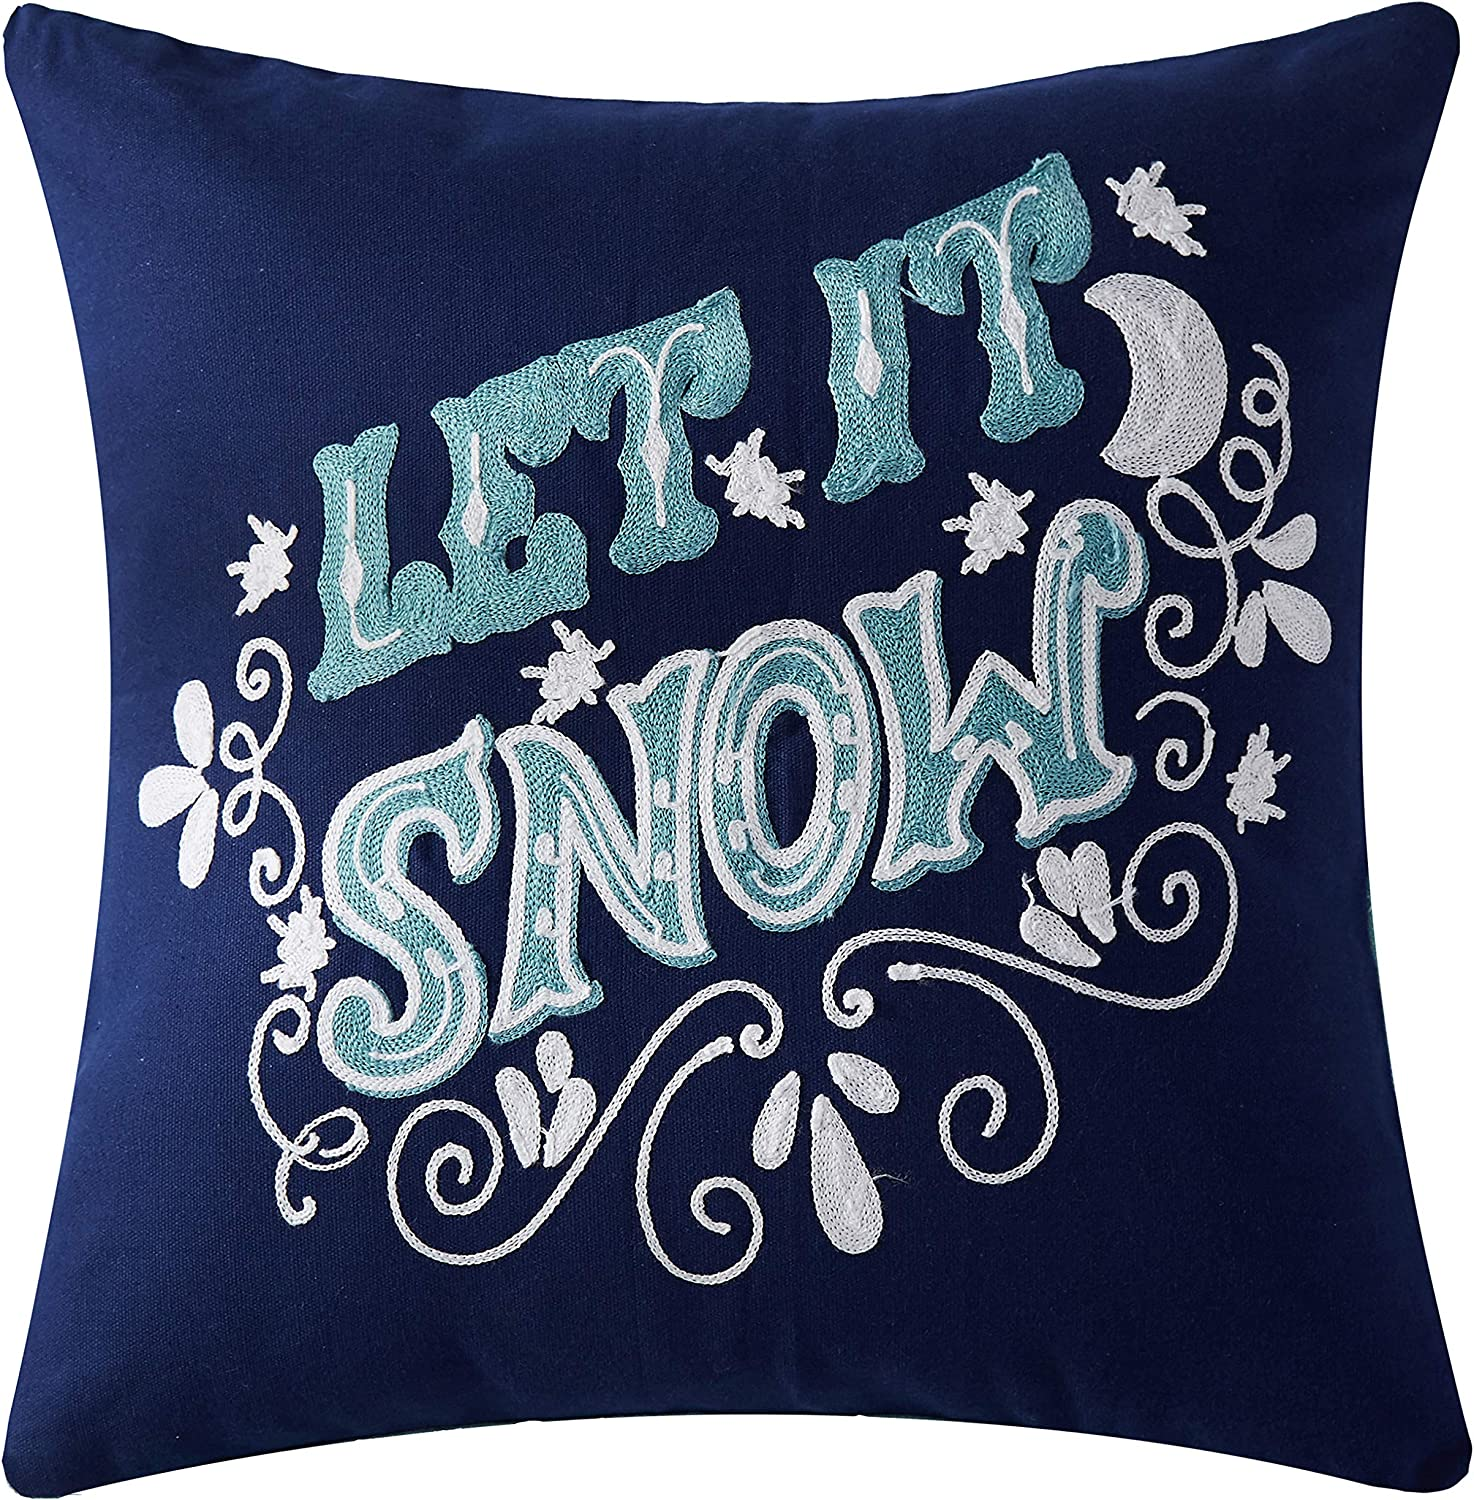 """Let It, Snow!"" Christmas Decorative Throw Pillow Cover"